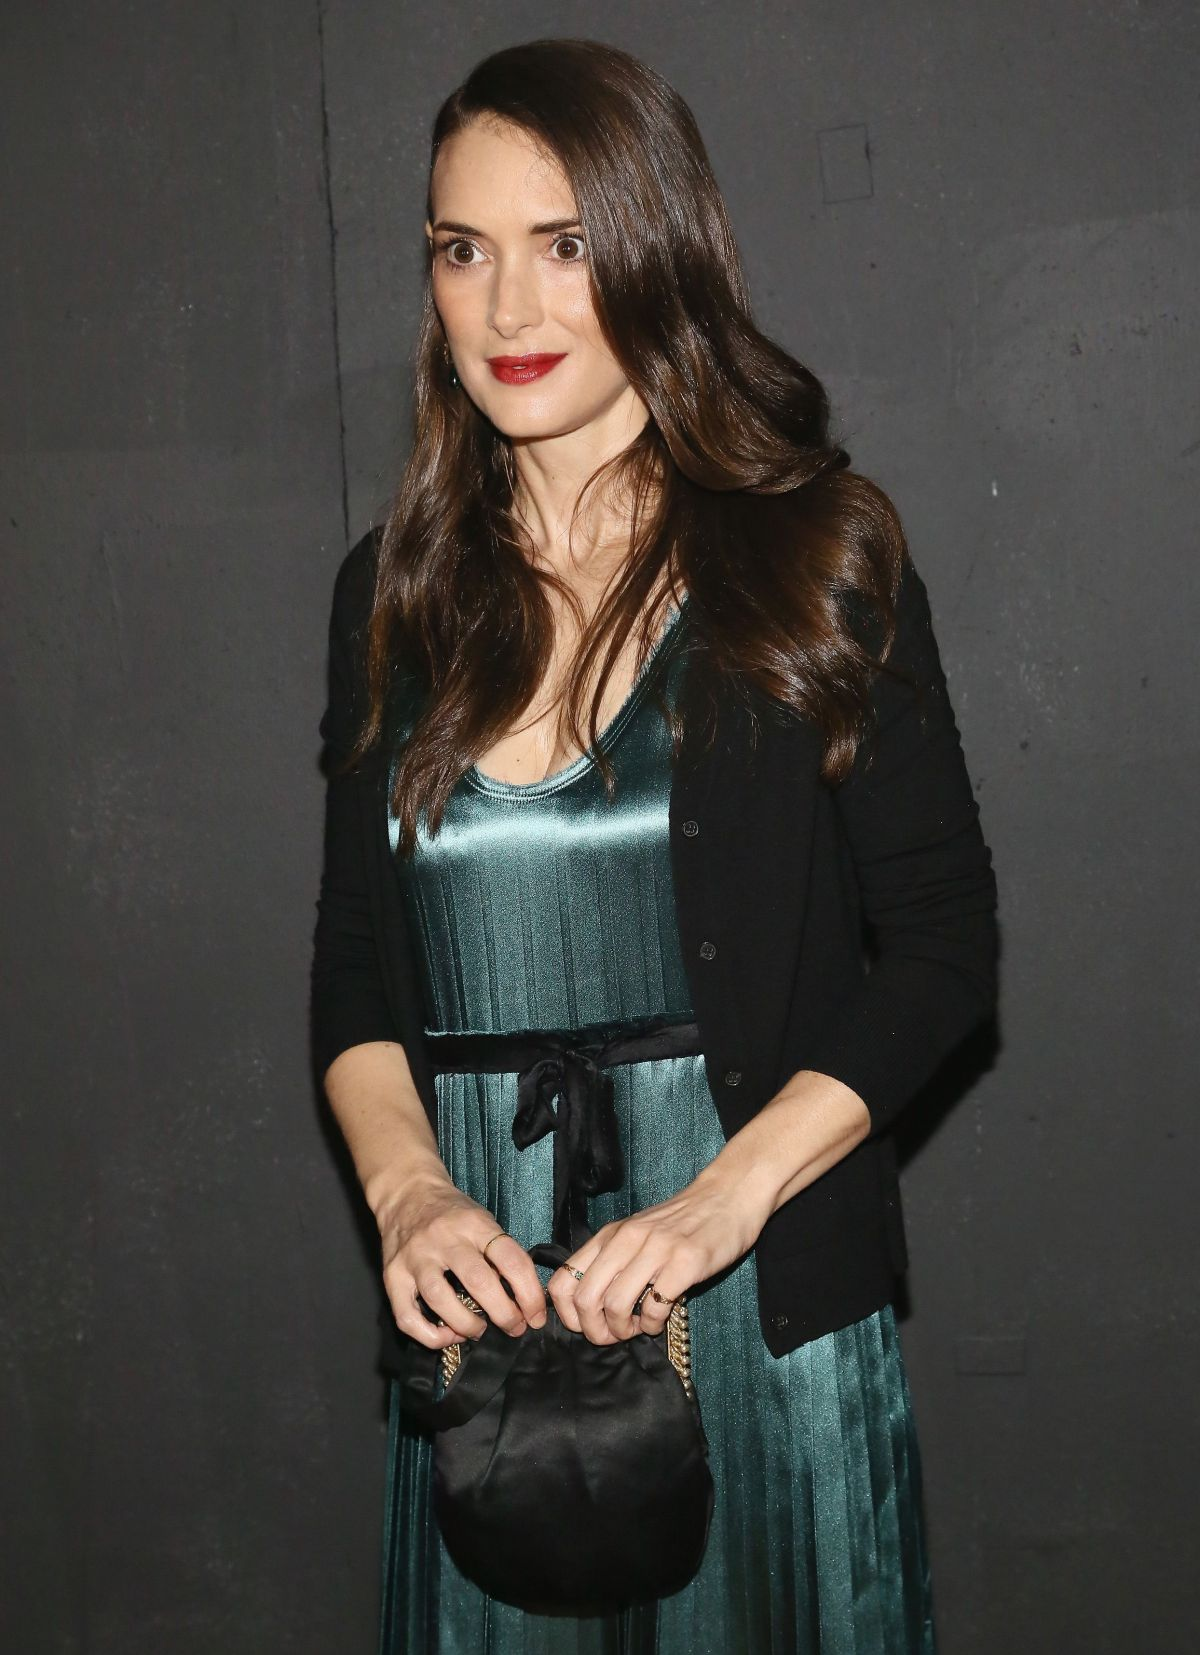 Winona Ryder At The Marc Jacobs Spring 2014 Fashion Show In NYC